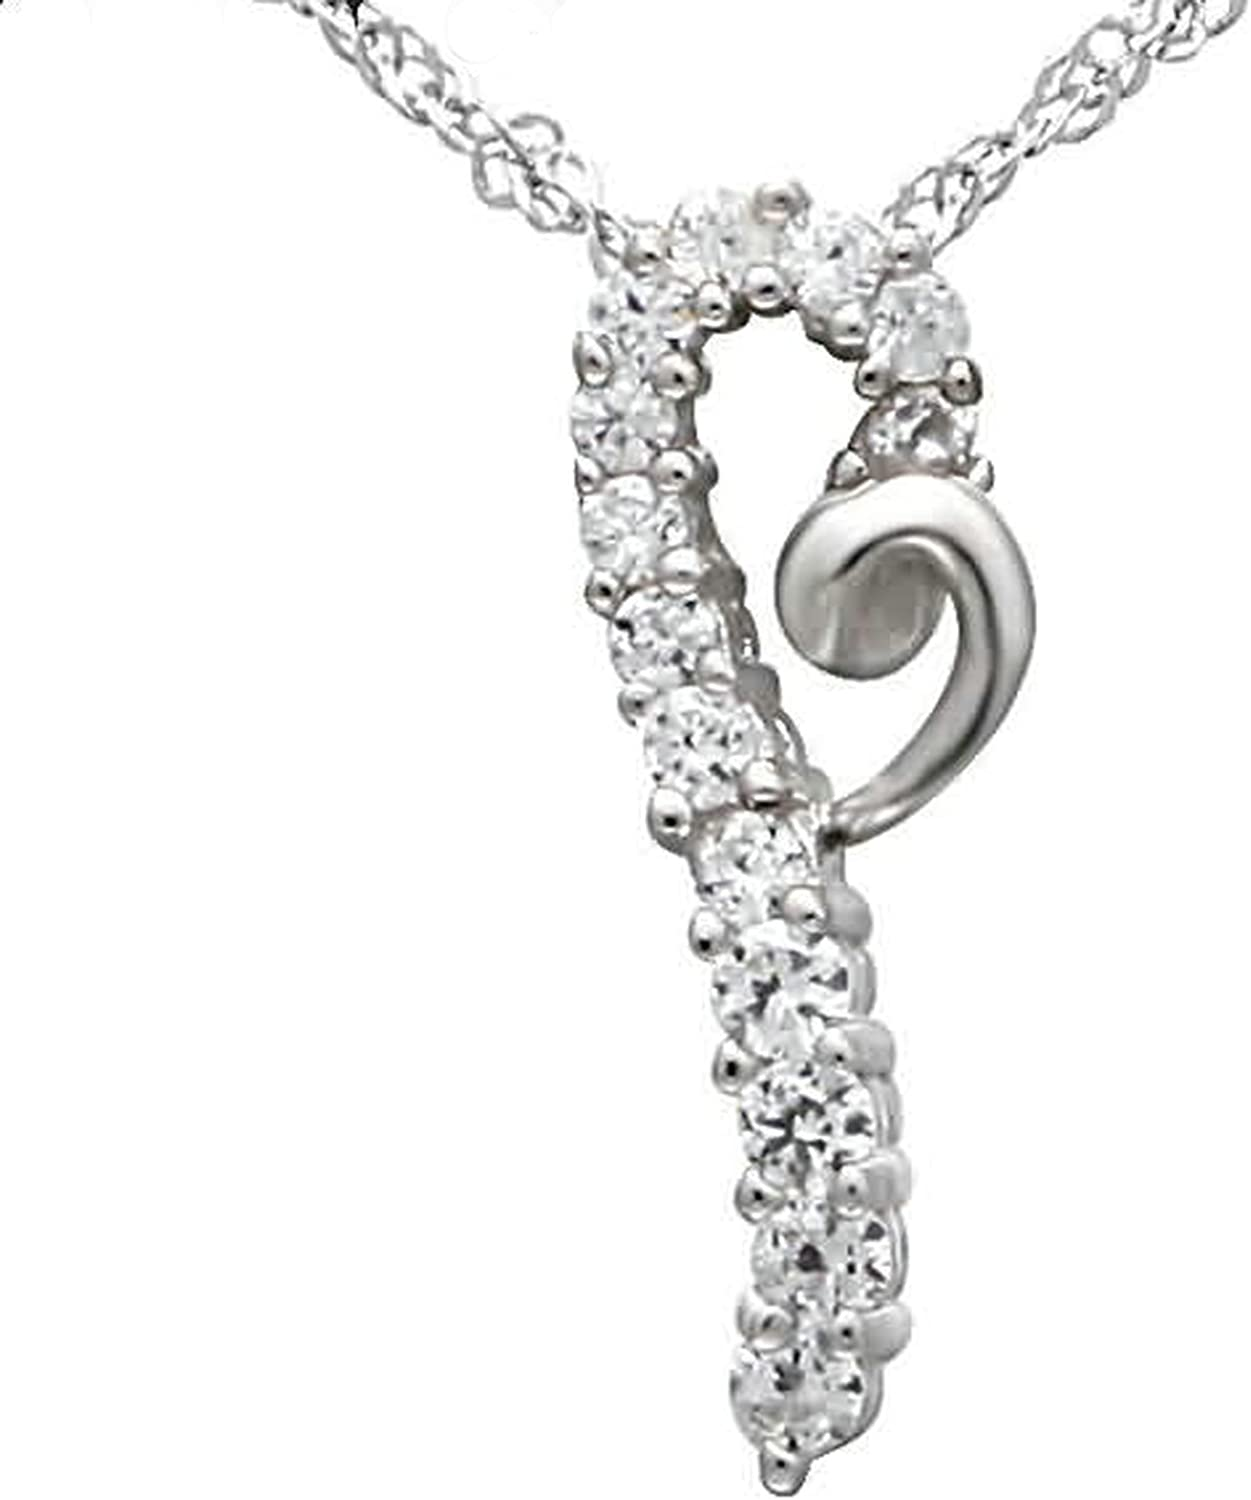 Aokarry Womens S925 Silver Pendant Necklace Swirl Floral Hook White